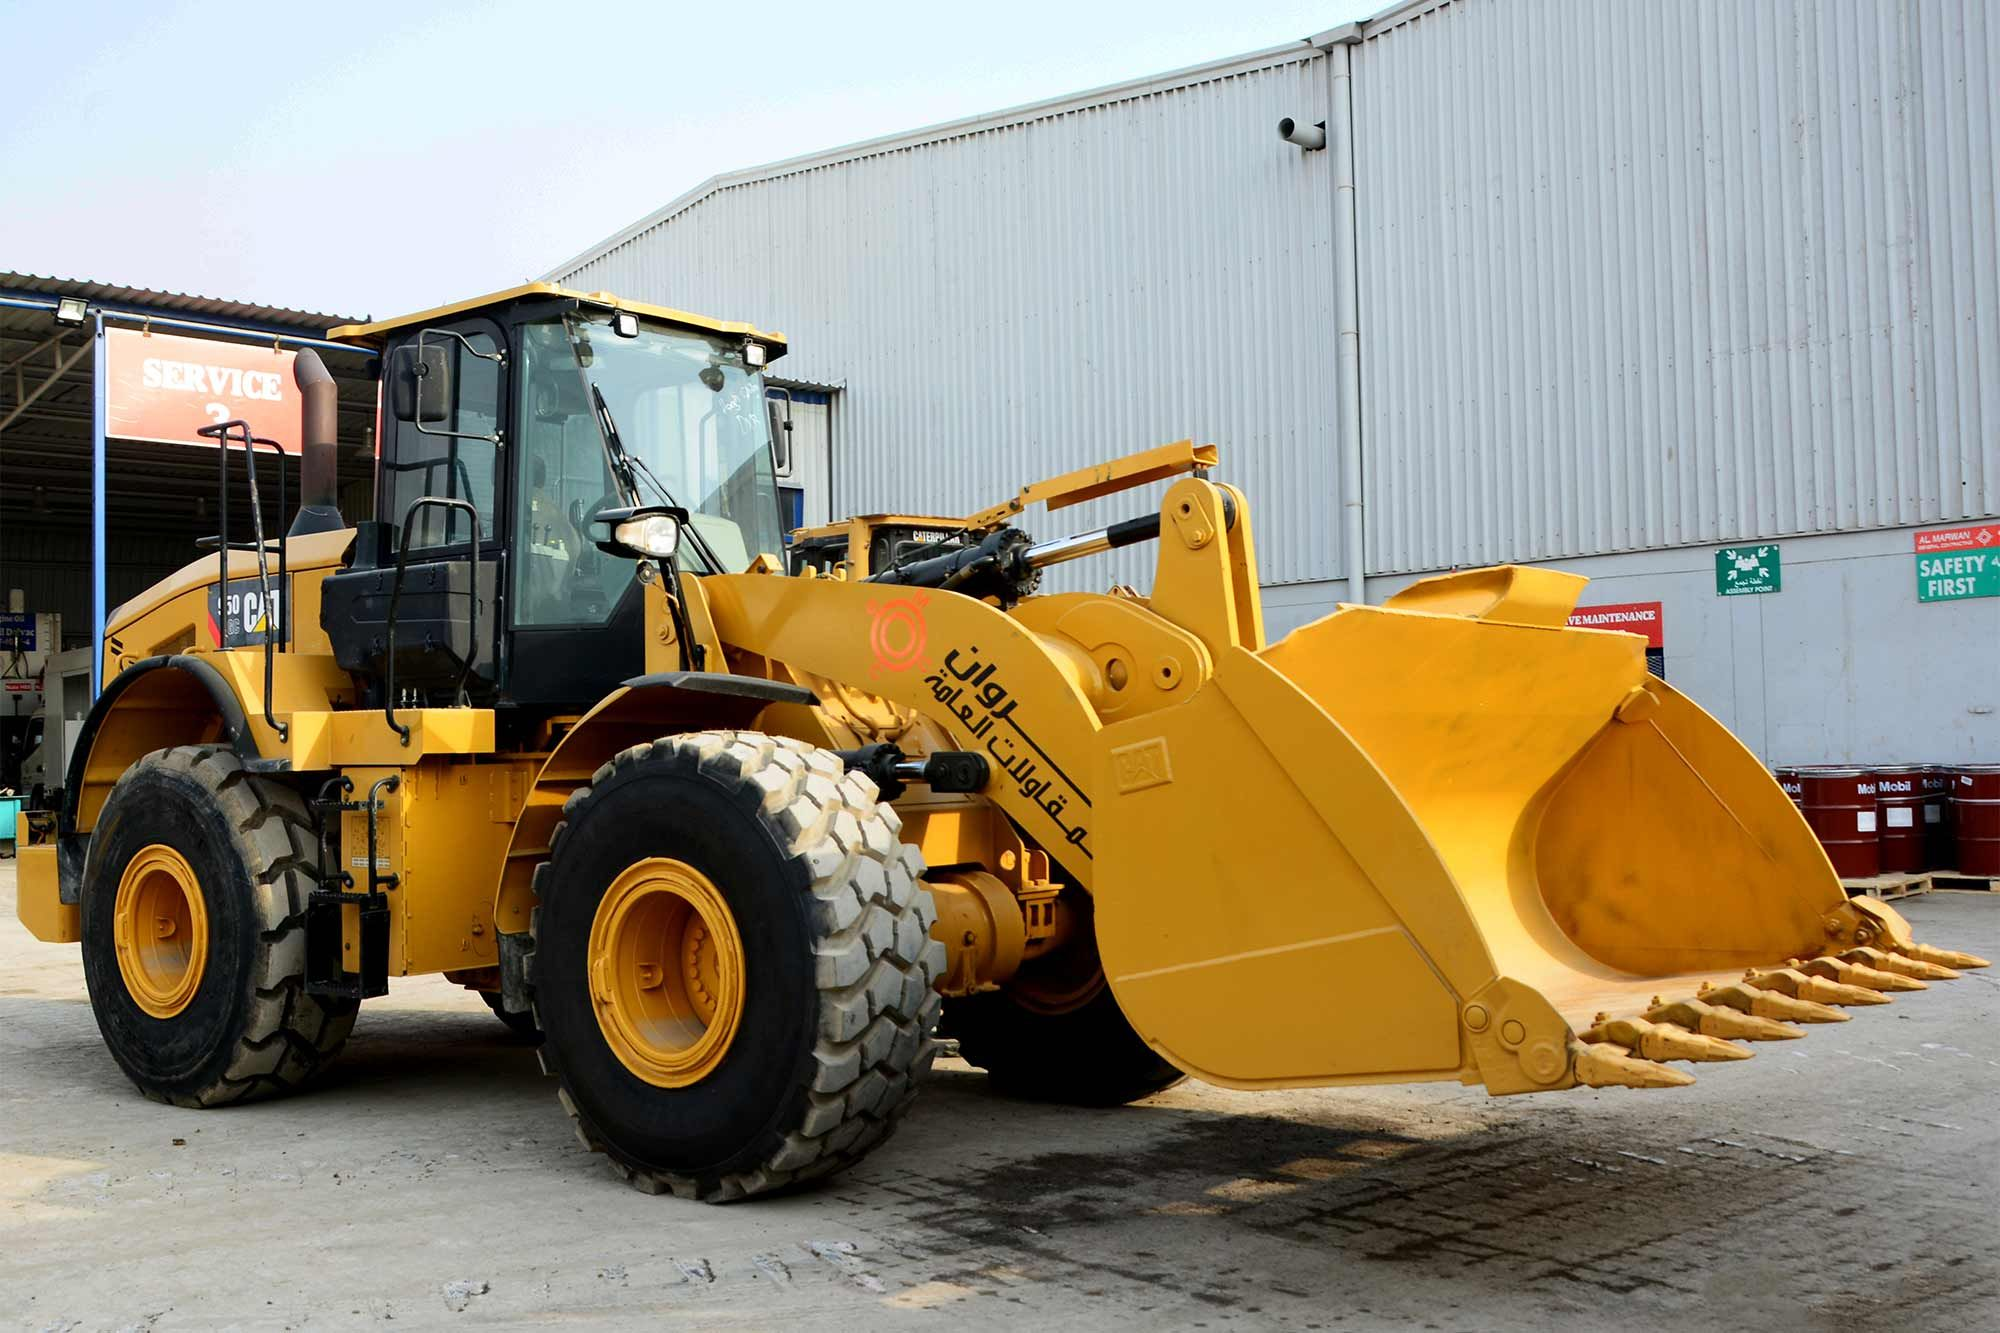 Factory Directly Supplied crawler loader, Inquire Now